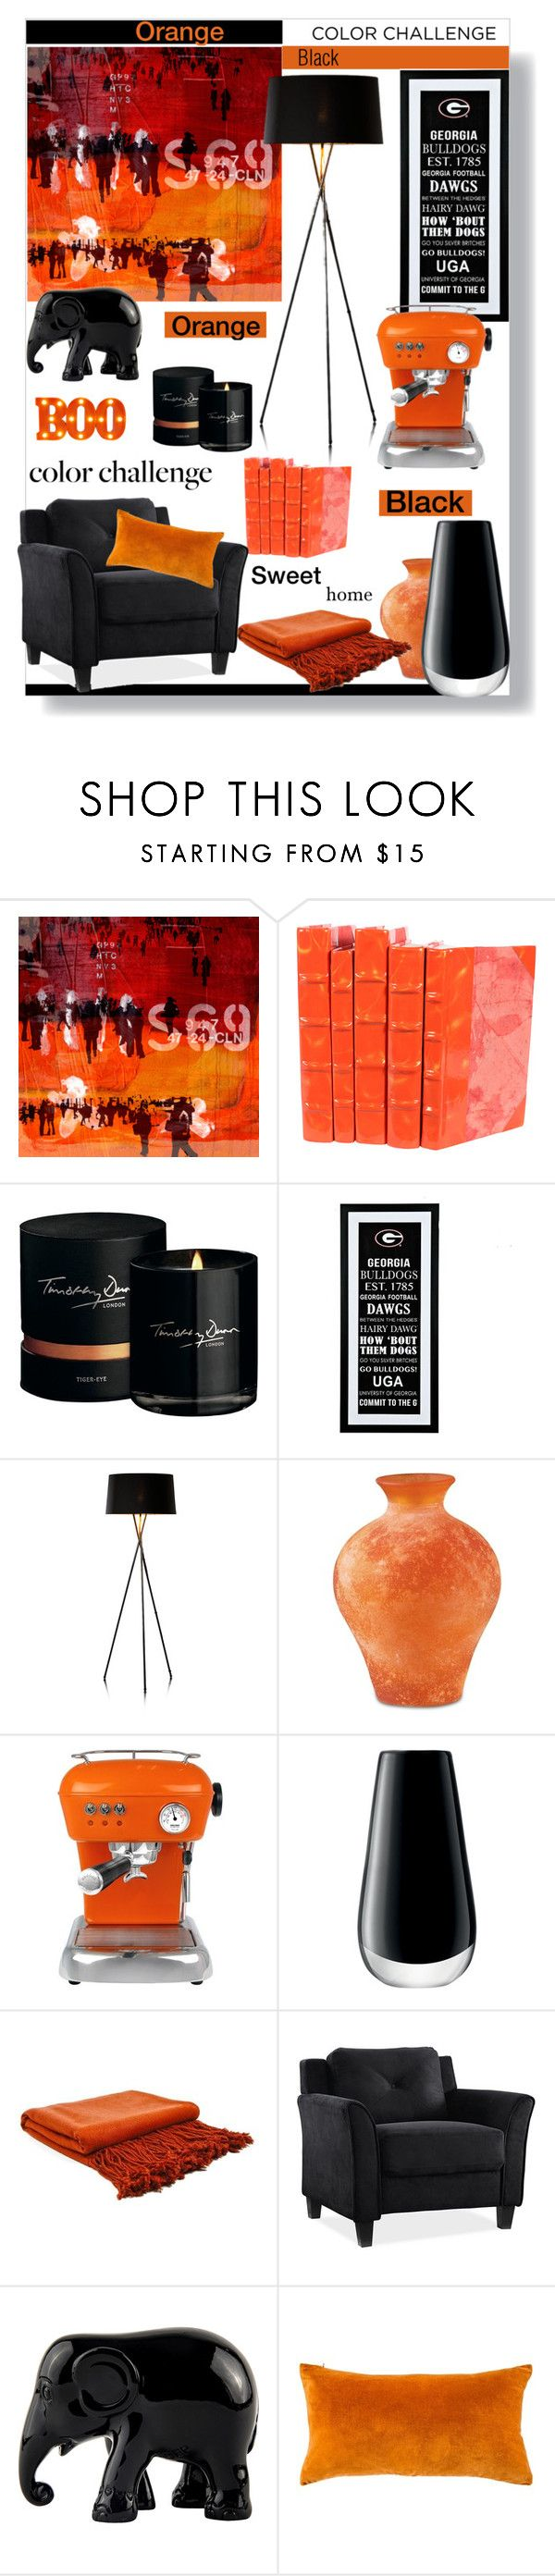 """""""Boo! Orange and black in my home."""" by fashionlovestory ❤ liked on Polyvore featuring interior, interiors, interior design, home, home decor, interior decorating, The Artwork Factory, Timothy Dunn, Ascaso and LSA International"""